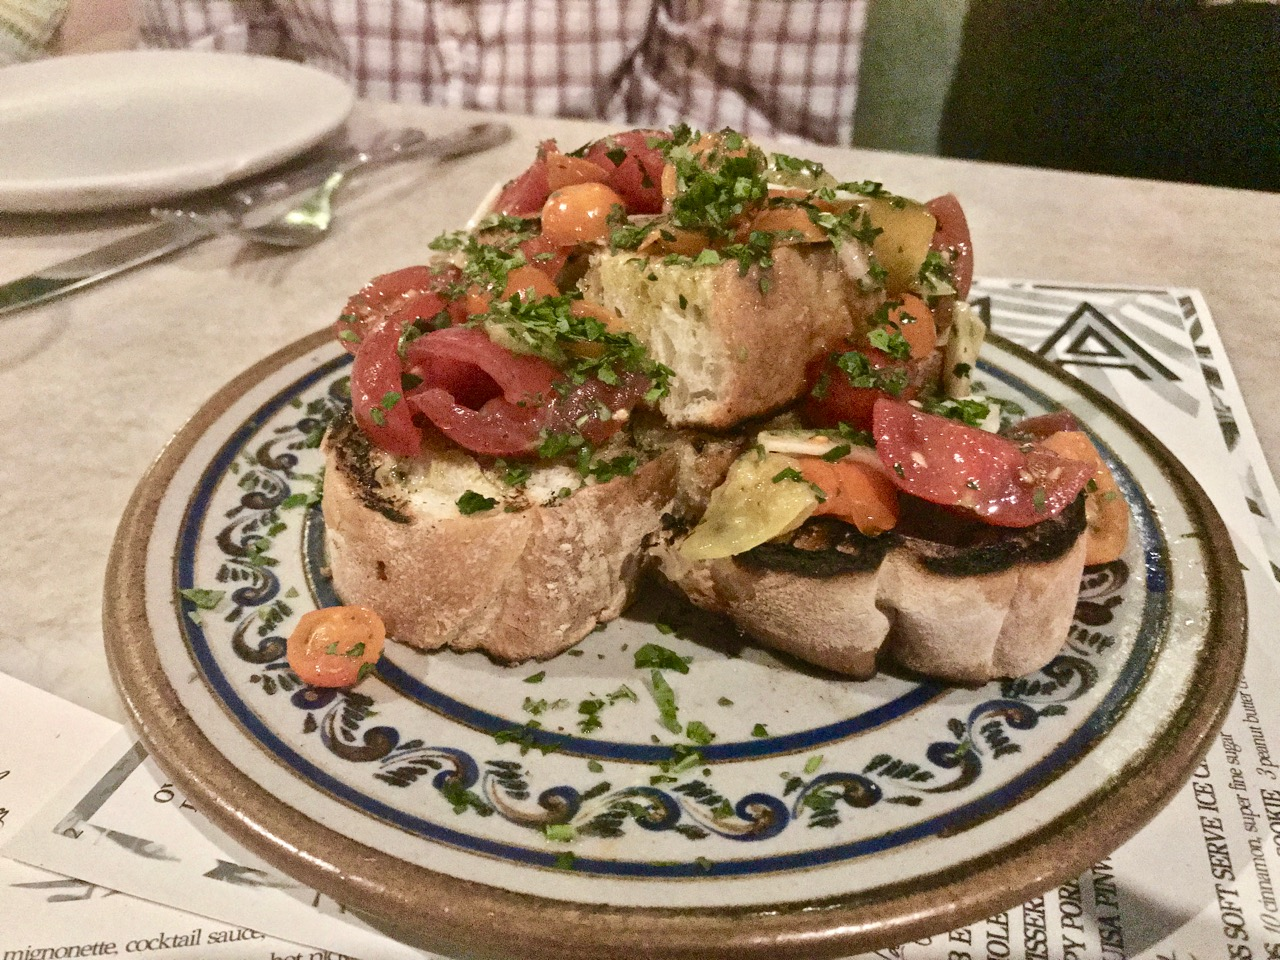 Dama Los Angeles - Restaurant Review and Experience